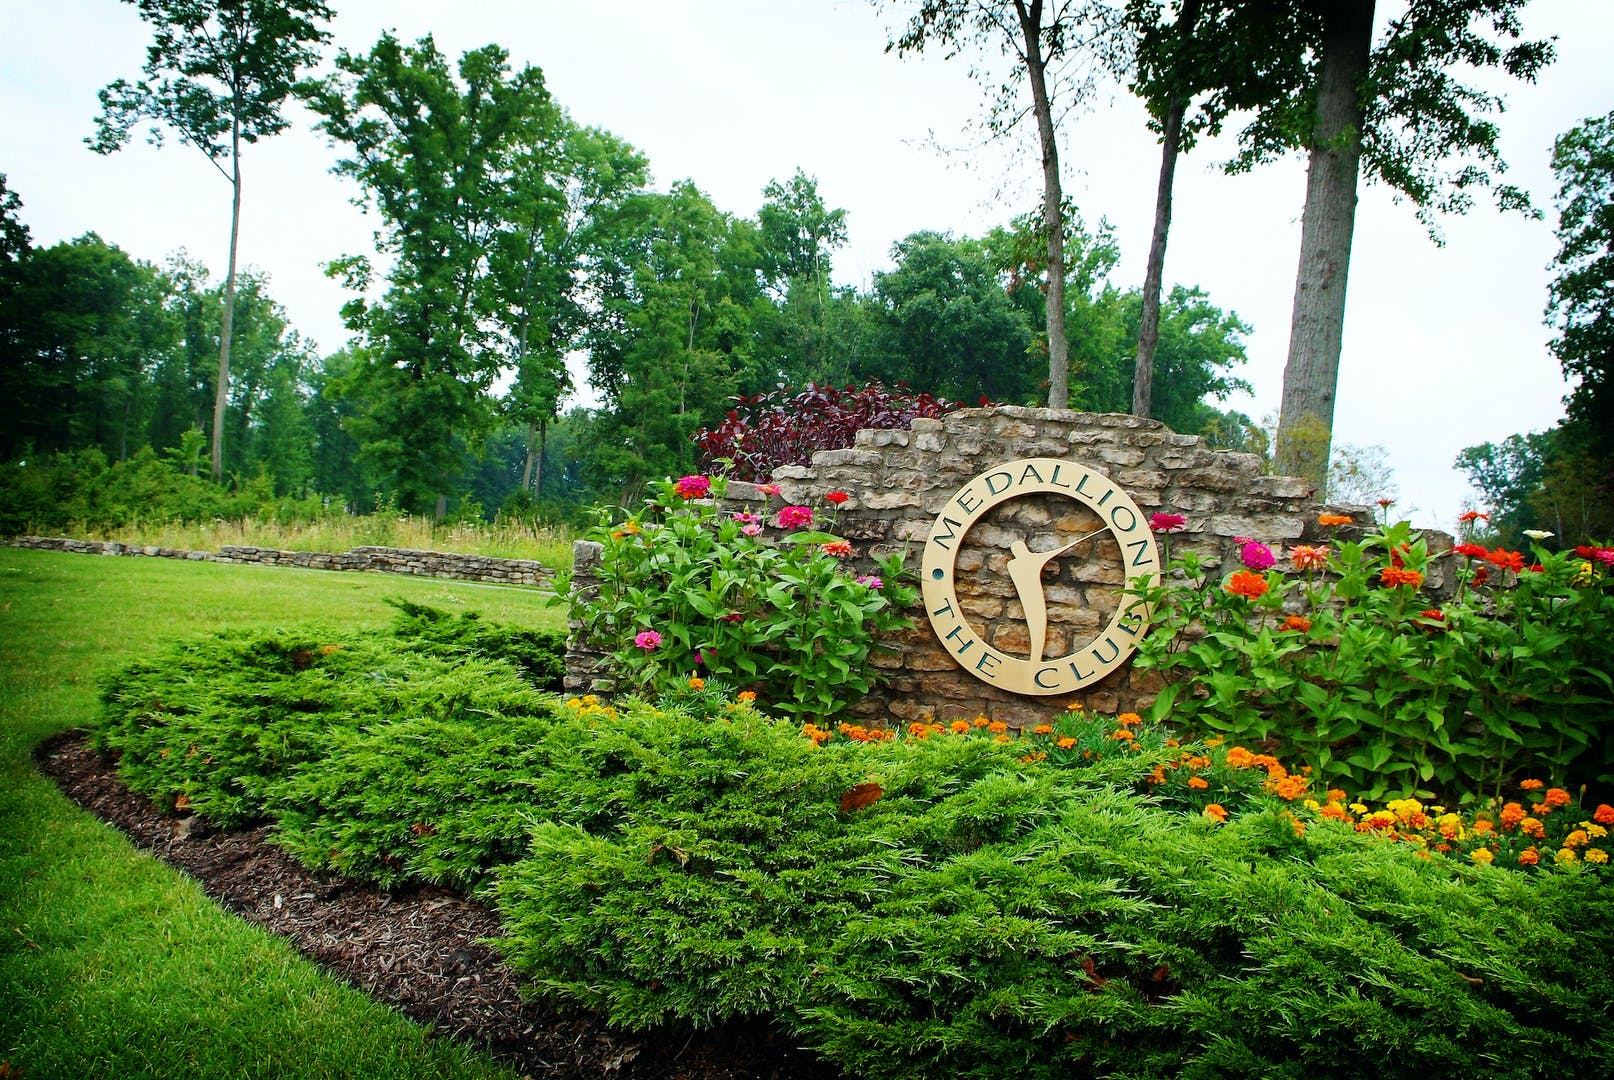 Image of The Medallion Club entry sign with flowers in bloom.